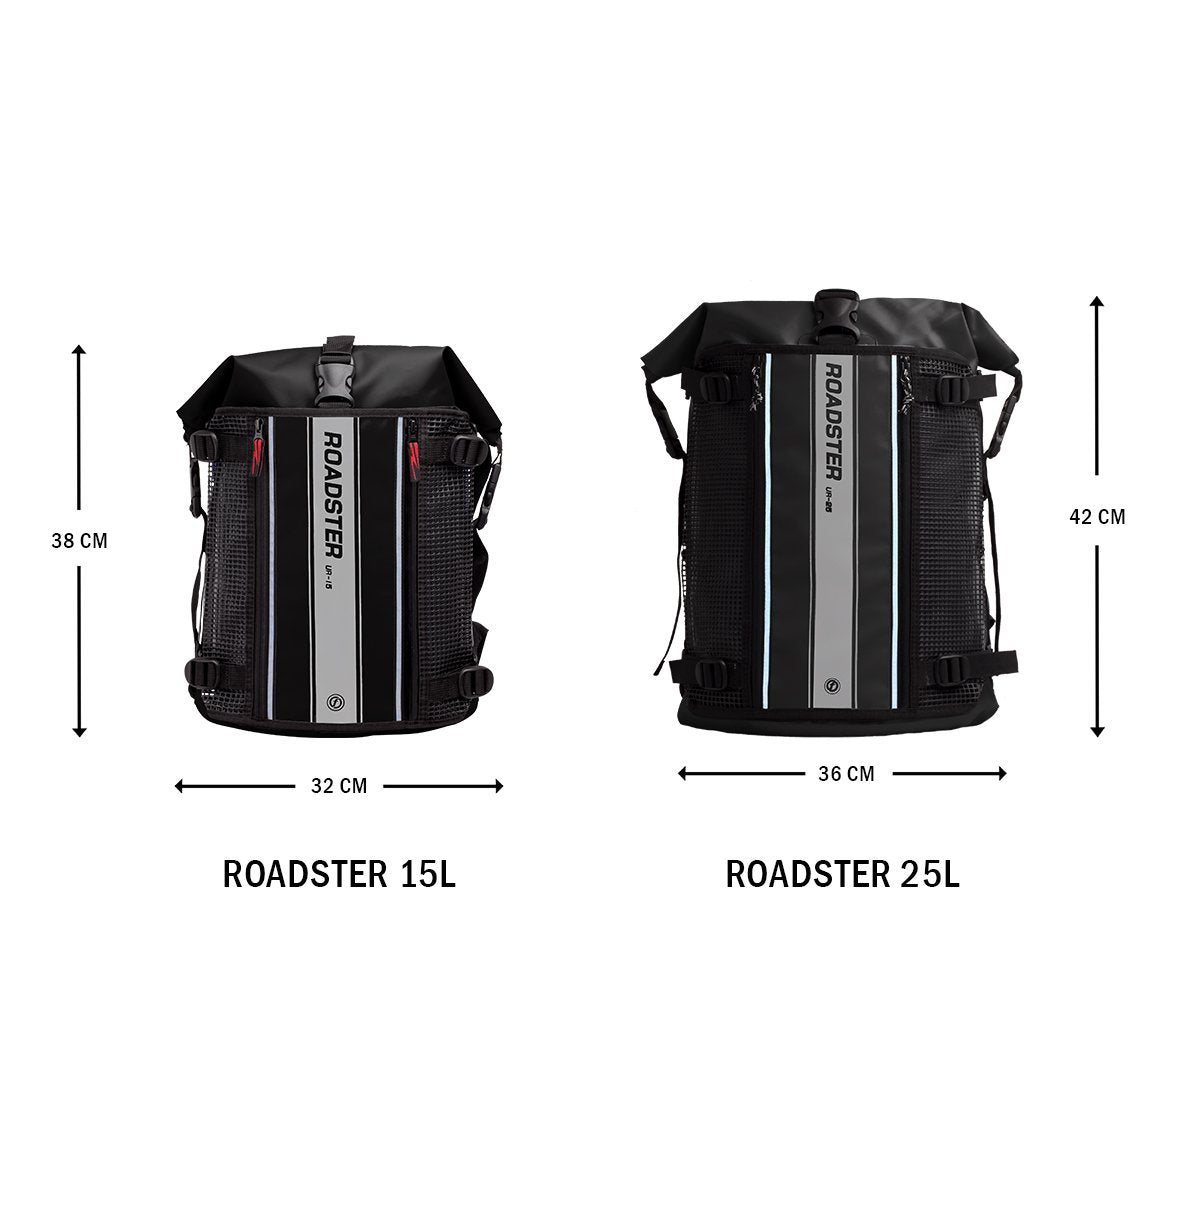 Dry Roadster 15L